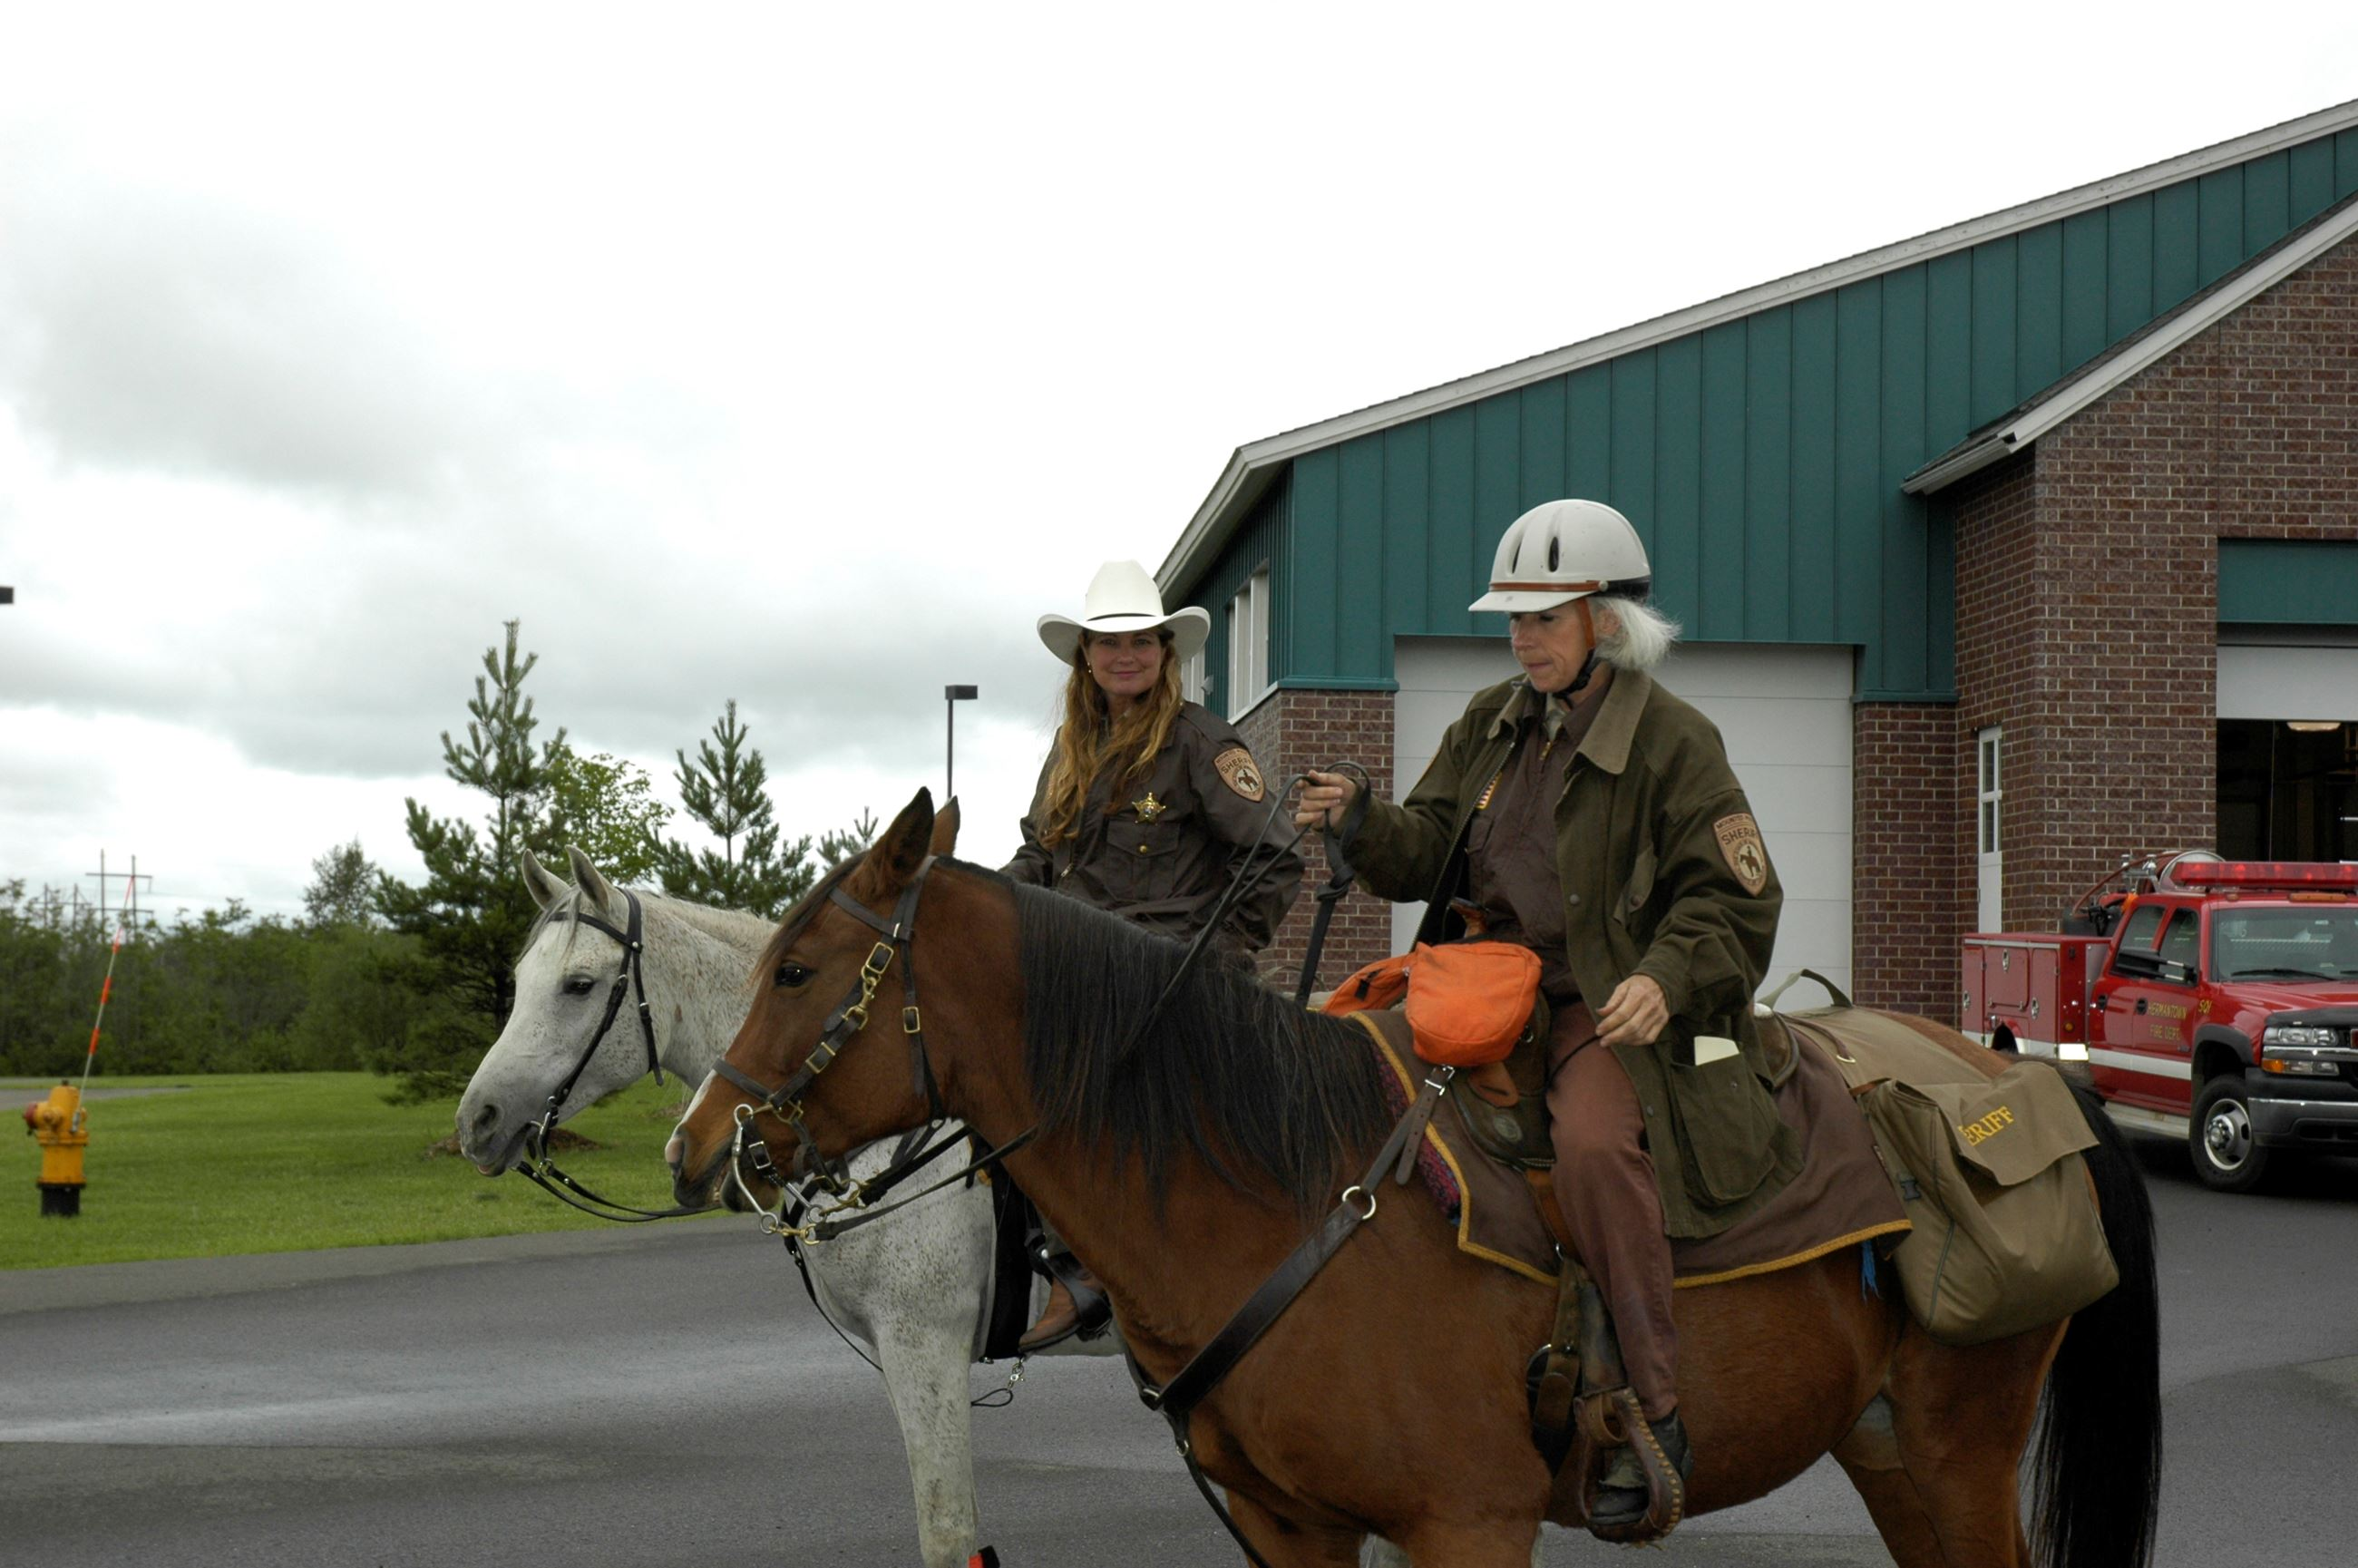 Two officers riding horses